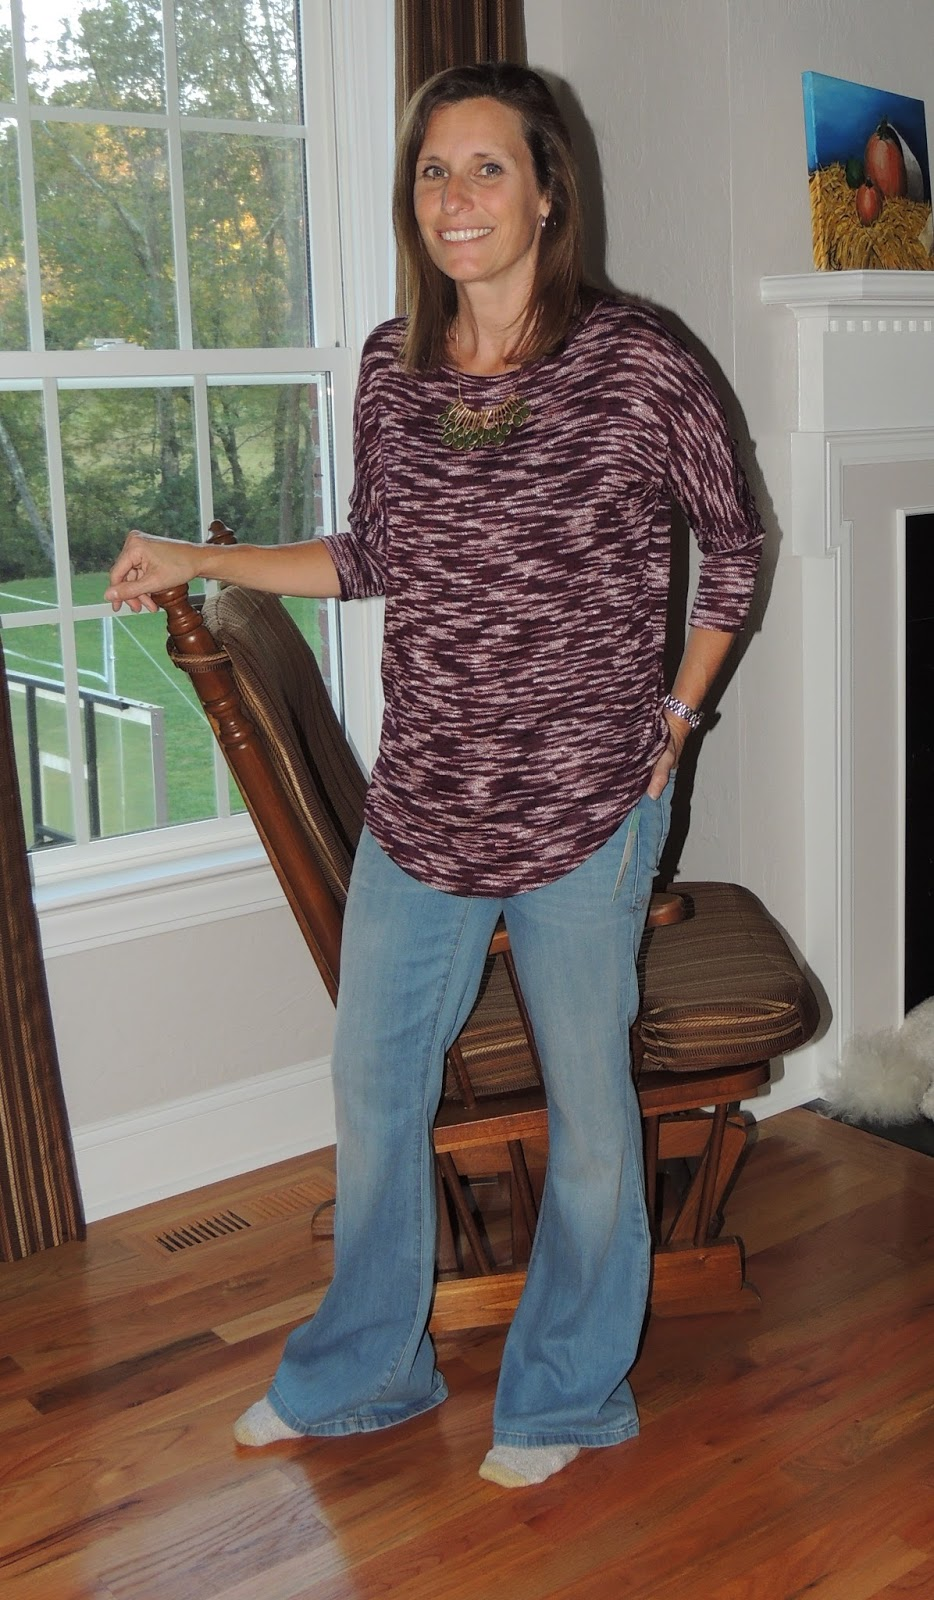 Life as I know it!!: Stitch Fix #10 WOW!! 2 in 2 days!! October Fix!